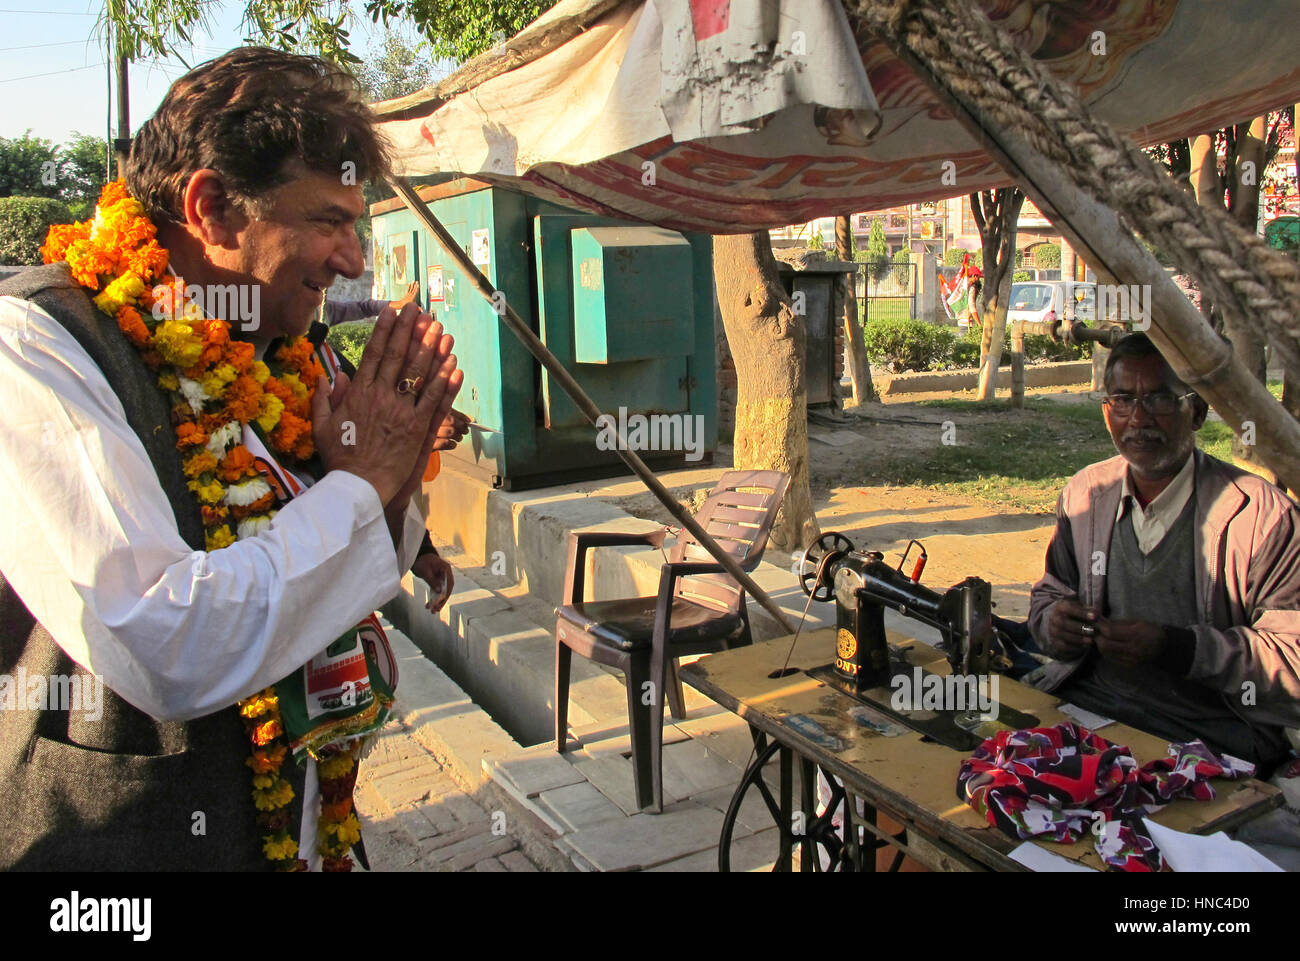 Uttar Pradesh, India. 8th Feb, 2017. KK Sharma (l), candidate of the Indian National Congress party, visits potential - Stock Image